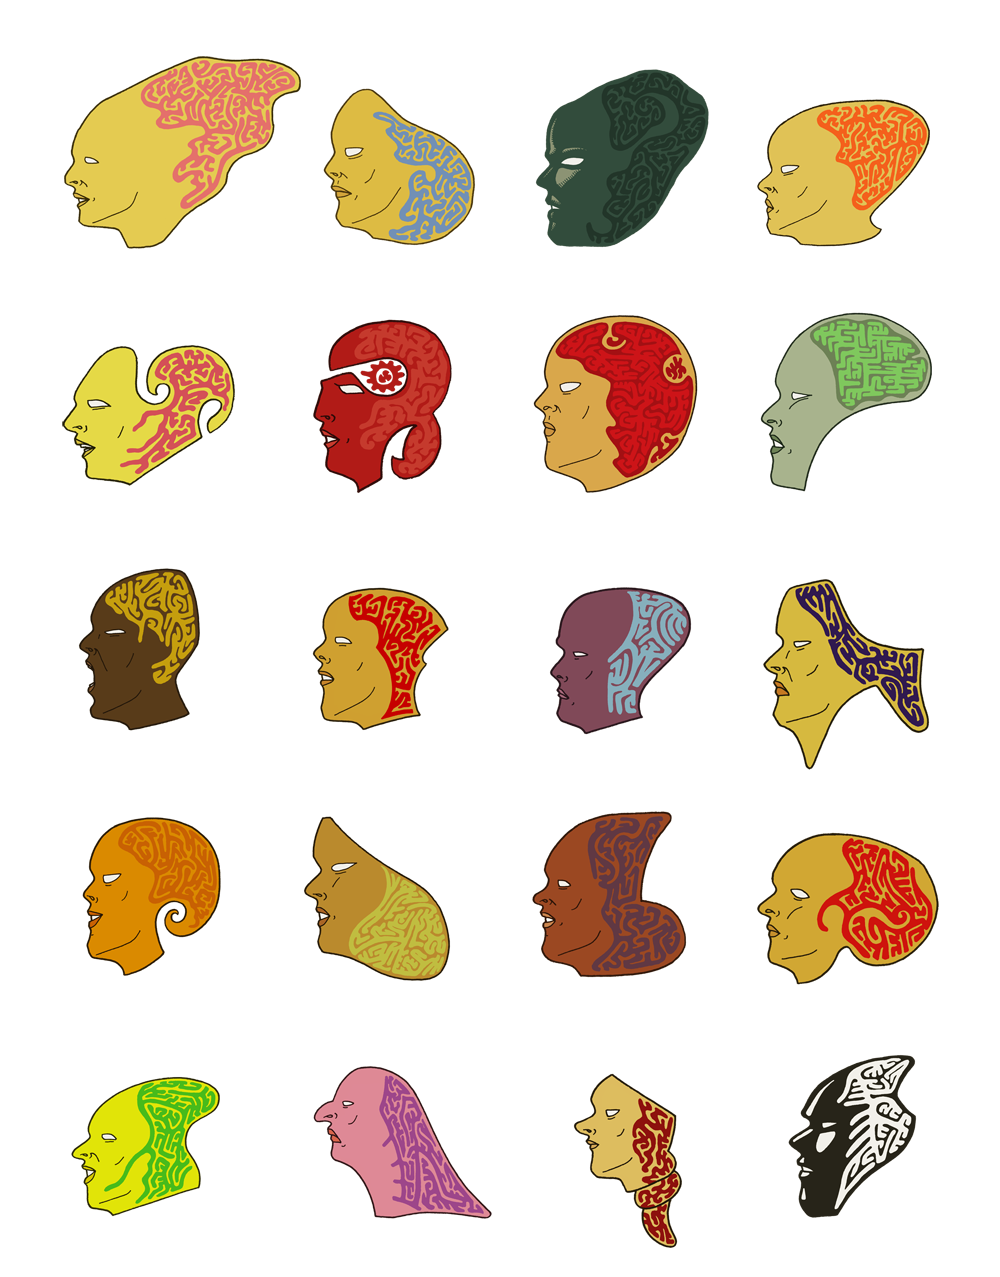 A series of illustrations showing the human profile and the labyrinth of the mind.